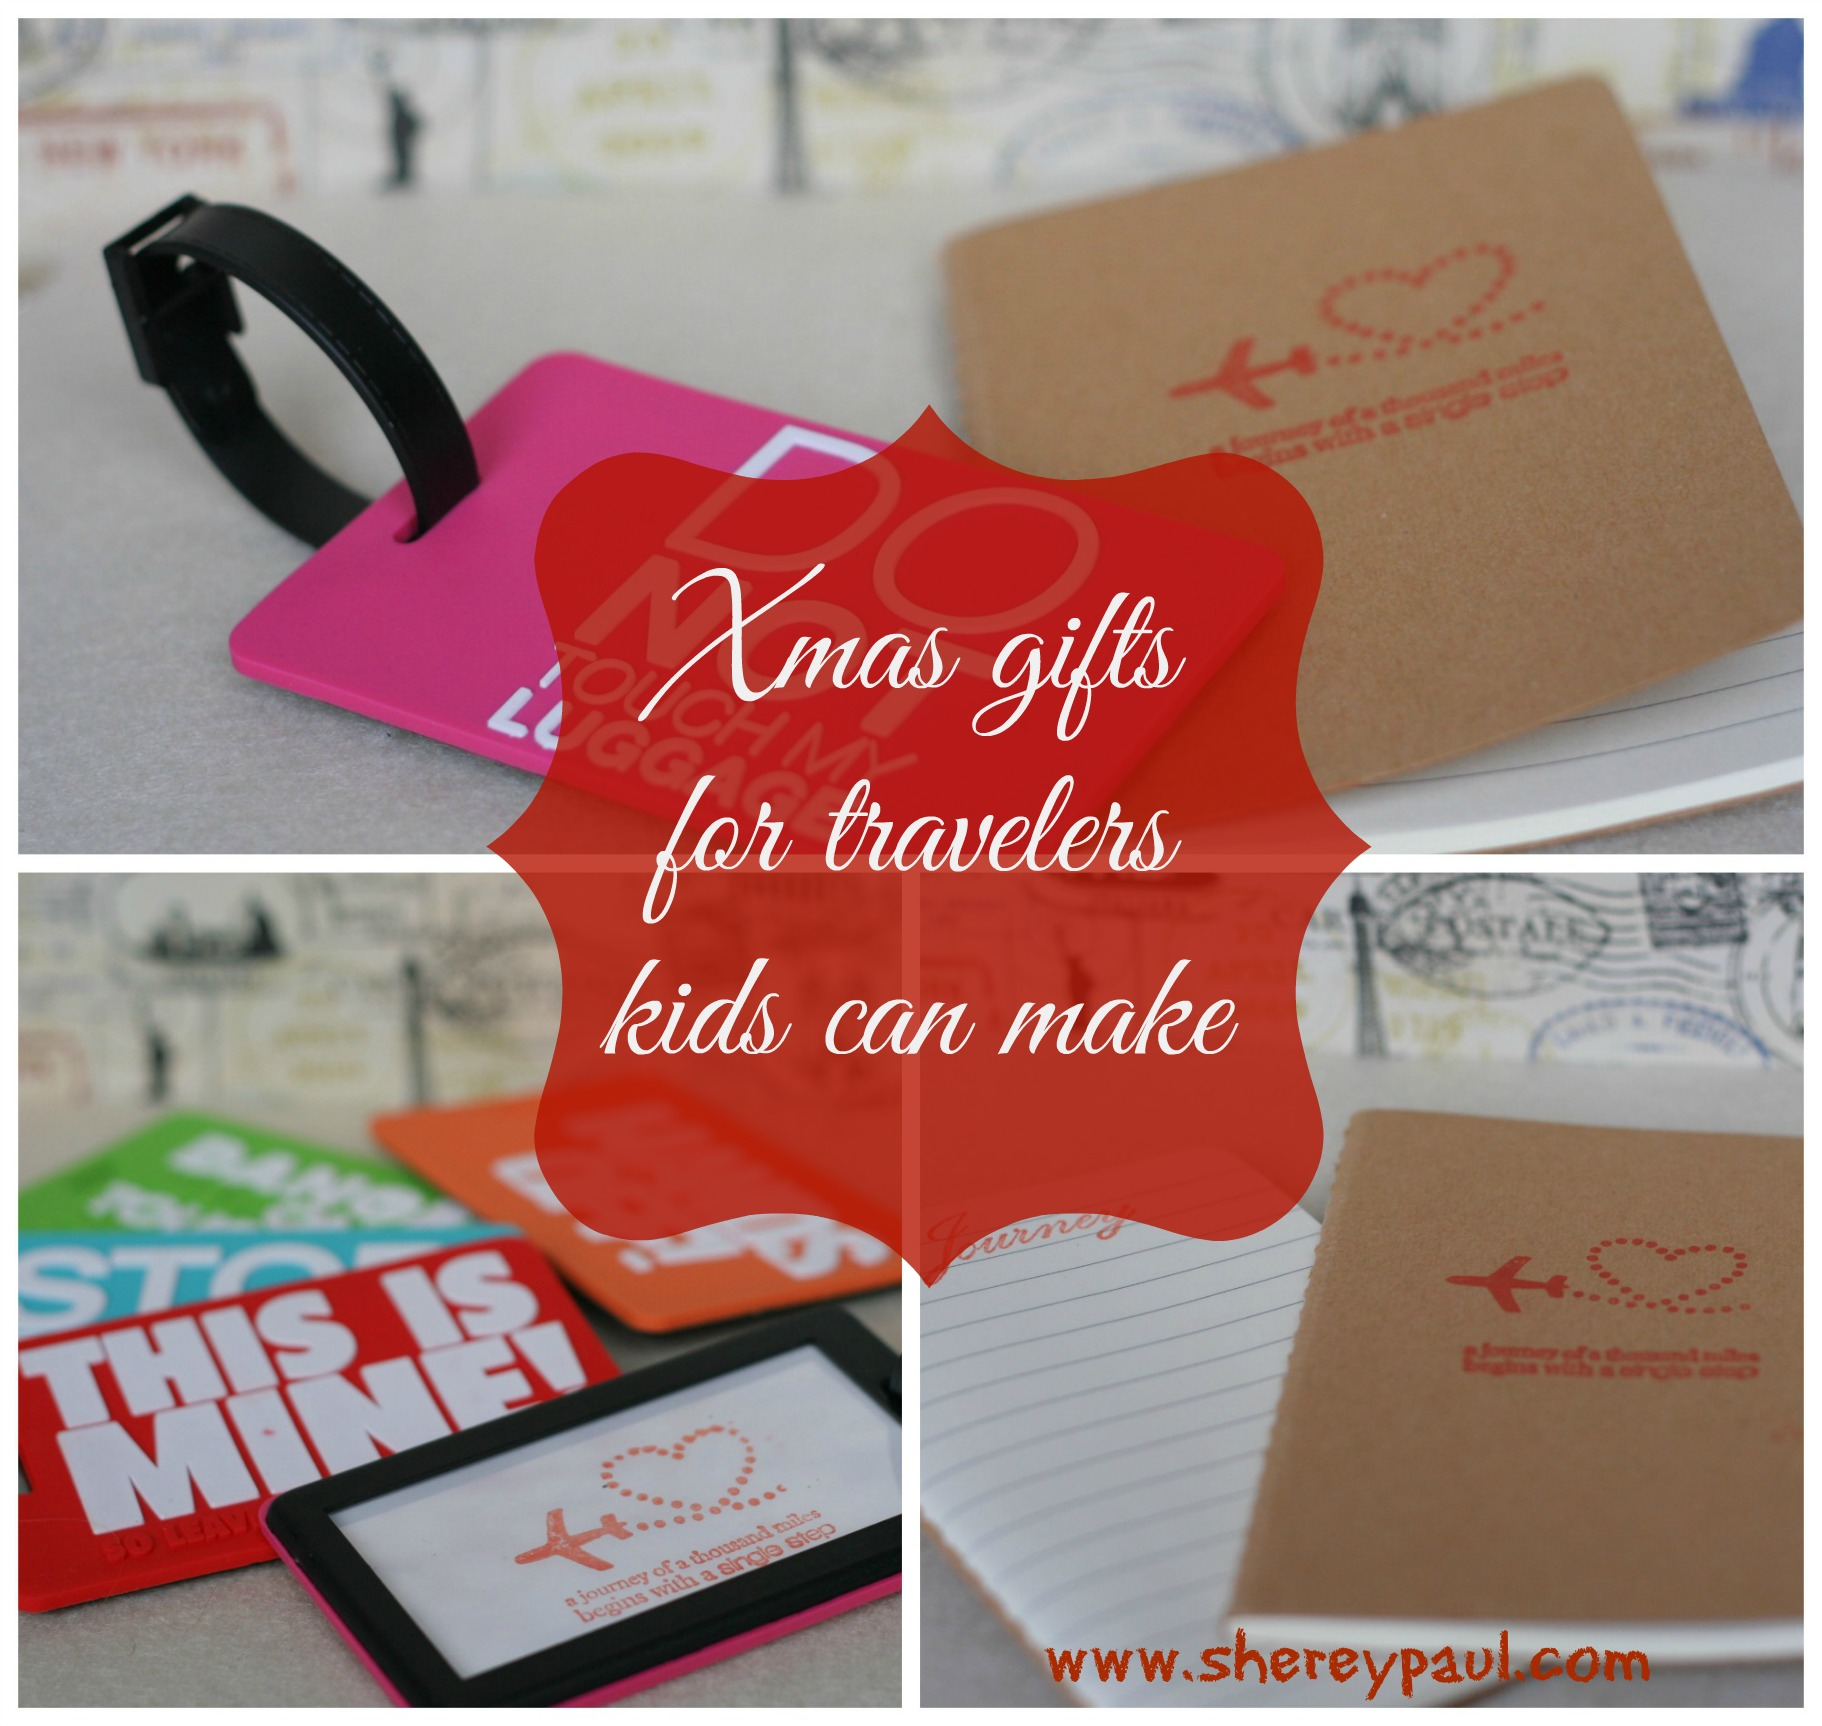 Xmas gifts for travelers kids can make